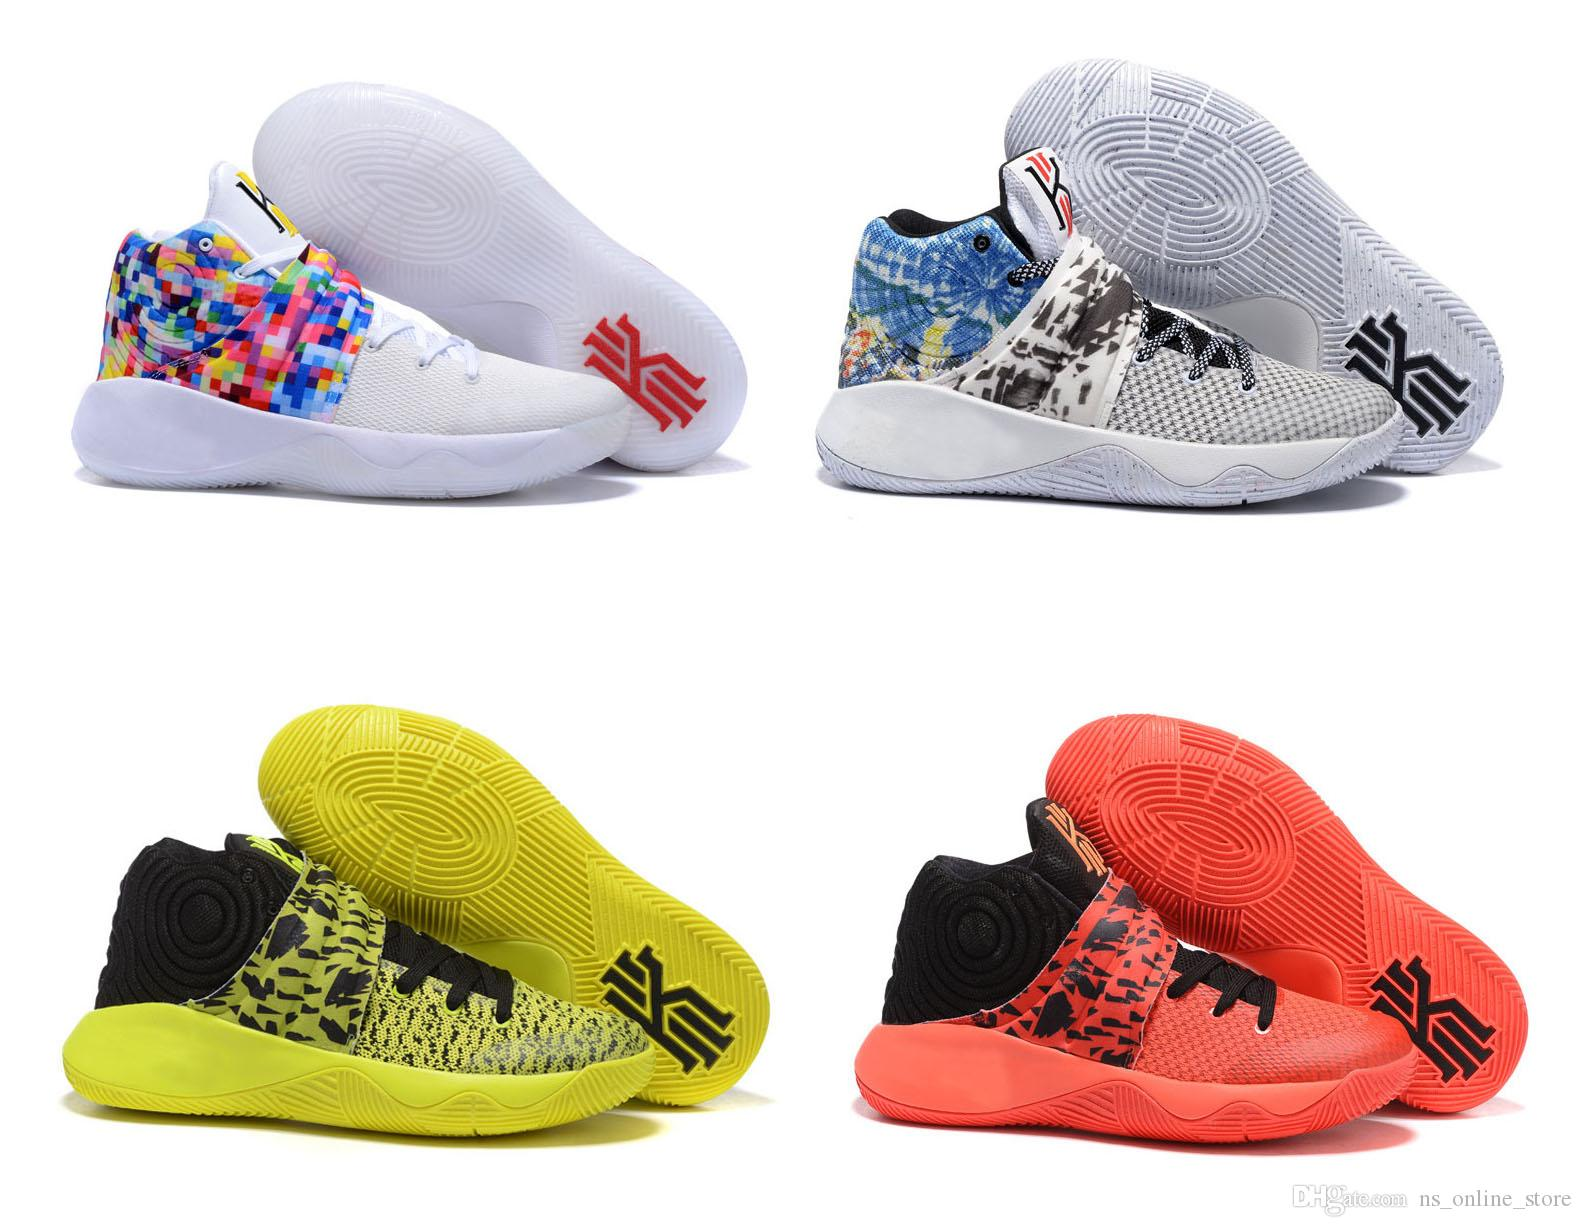 online retailer 975ff de88a Kyrie Irving Basketball Shoes For Men Kyrie 2 Bright Crimson Tie Dye BHM  All Star Basketball High Quality Outdoor Sports Sneakers Basketball Mens  Shoes From ...